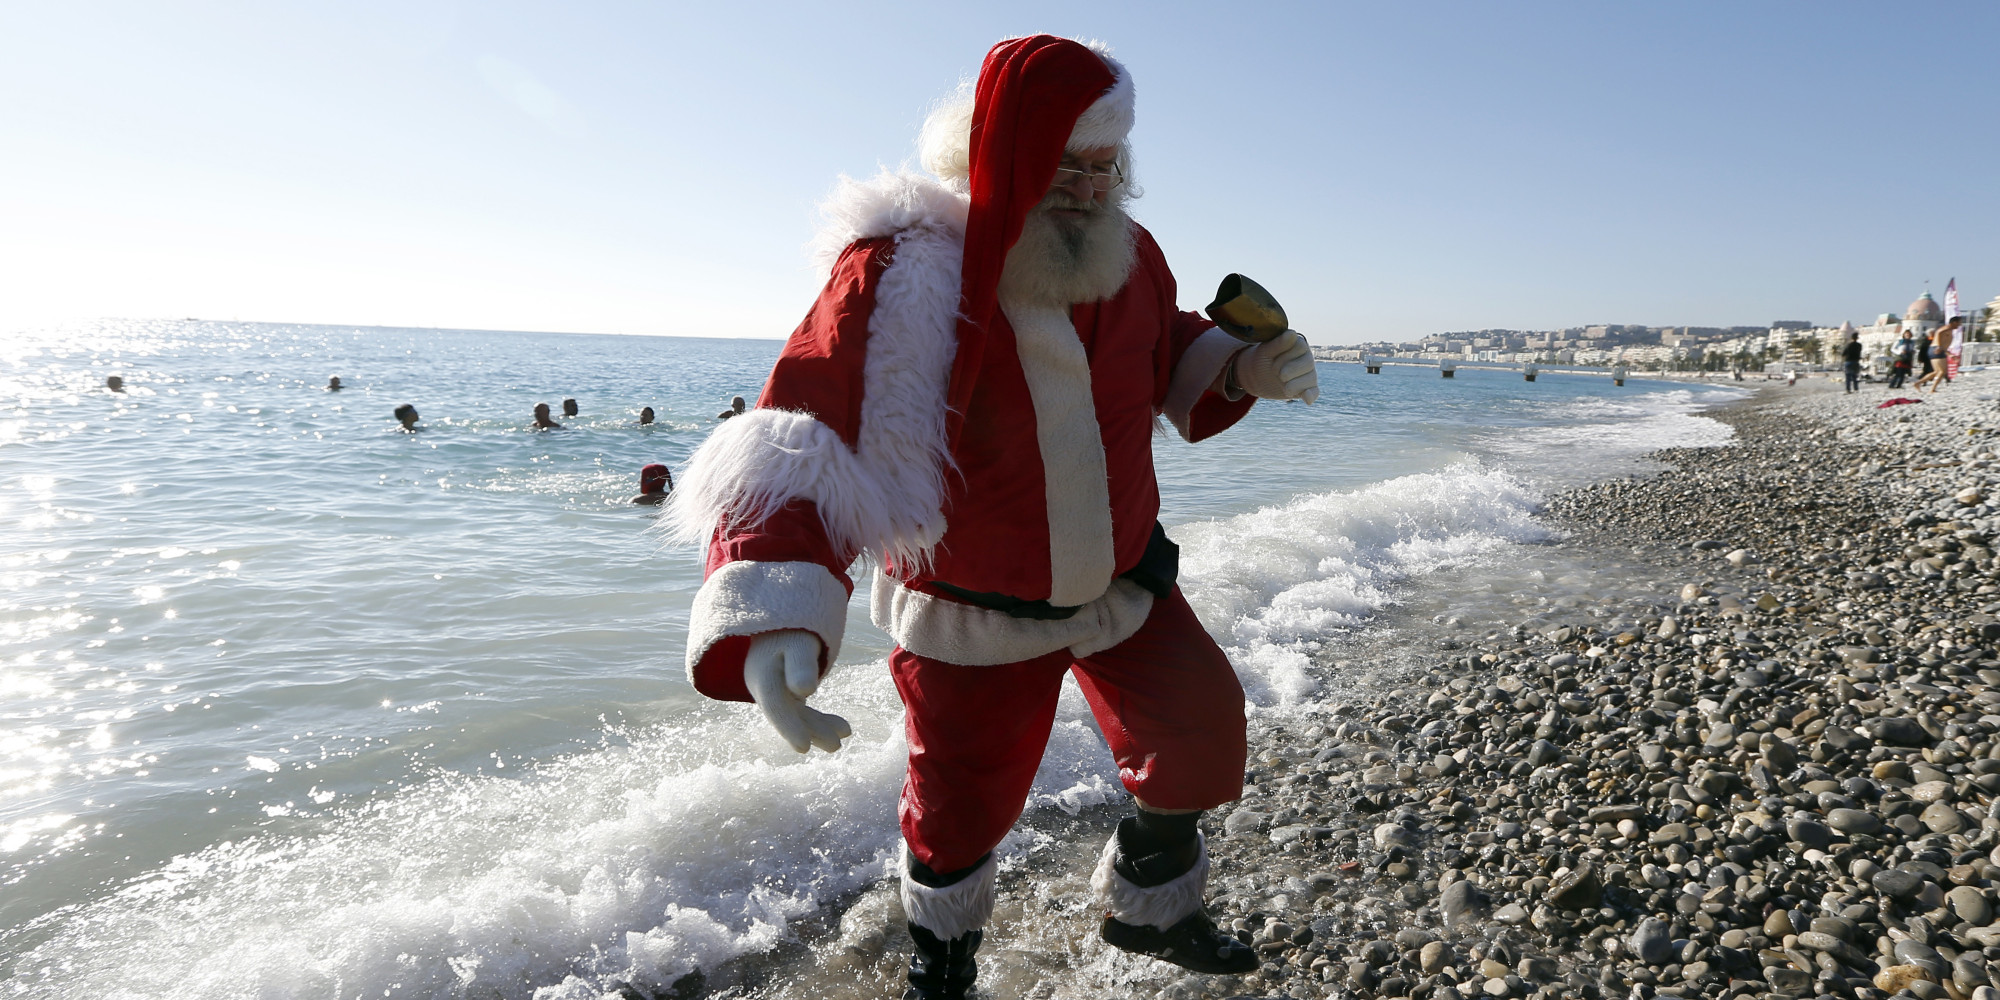 Penguins, Sufis And Santa At The Beach: The Week In Photos ... (2000 x 1000 Pixel)